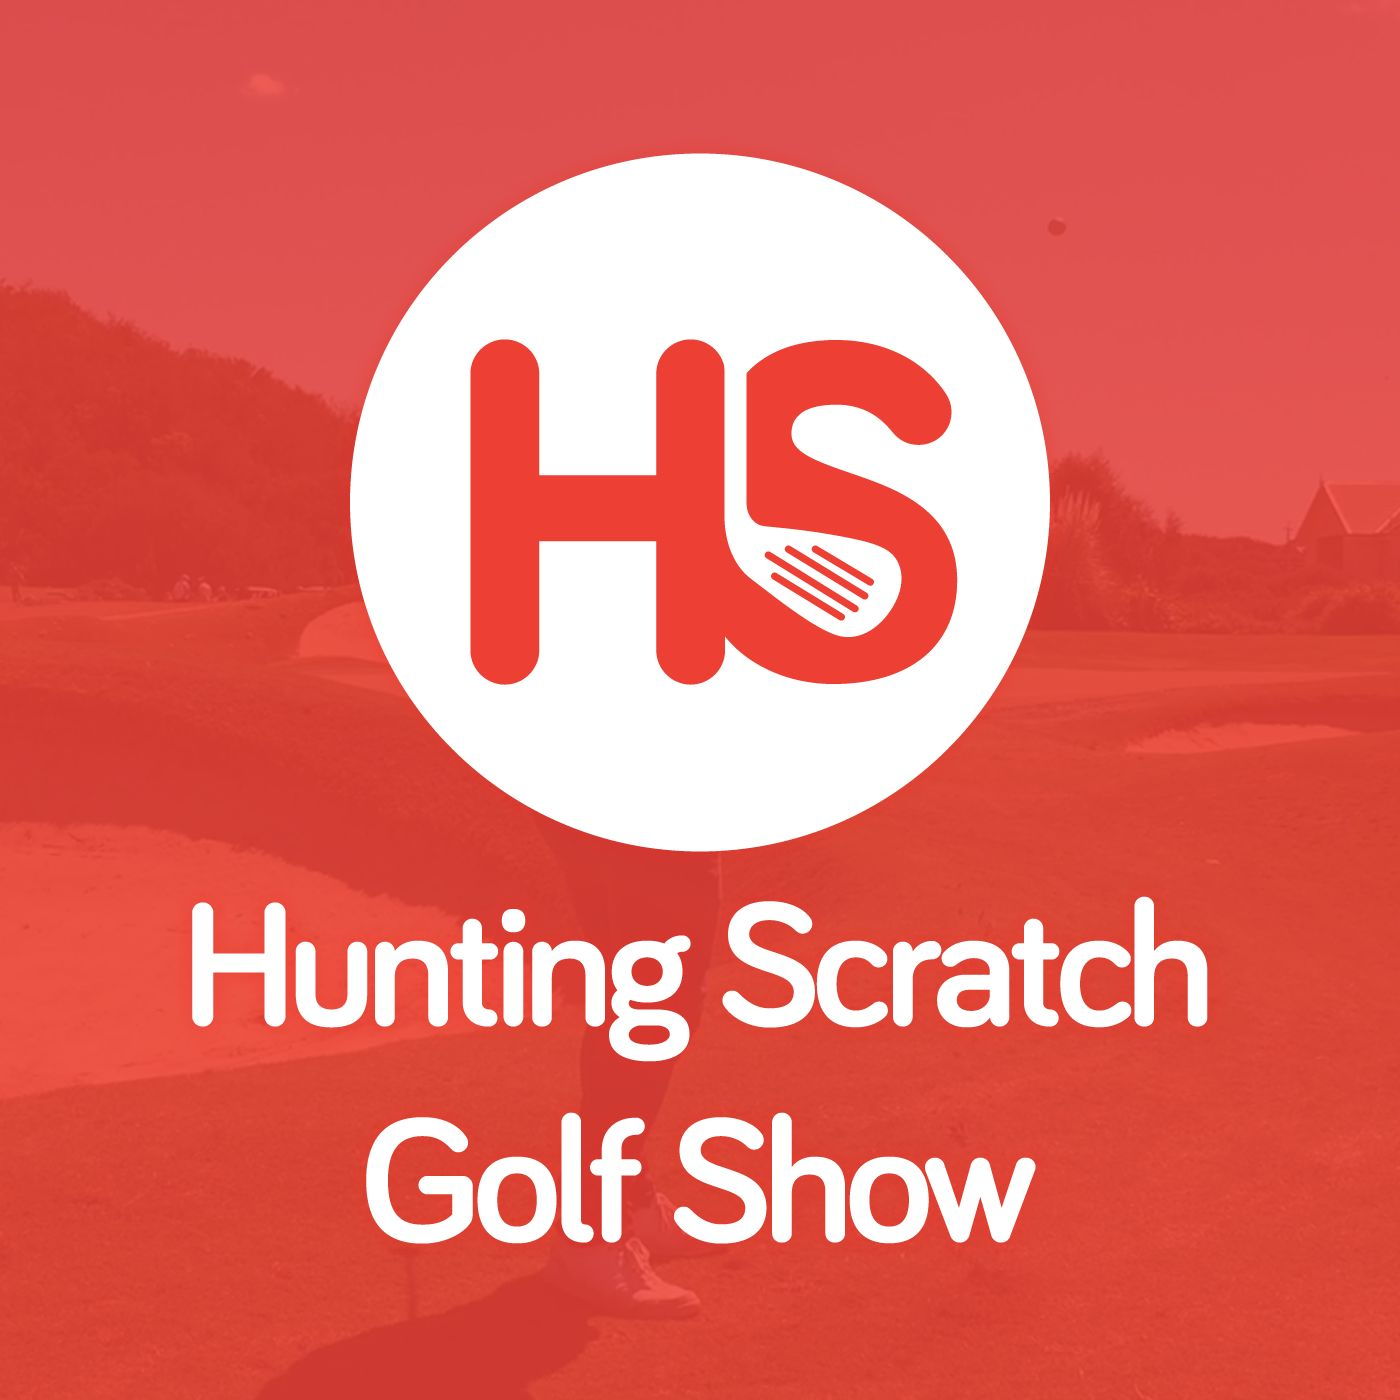 Hunting Scratch Golf Show